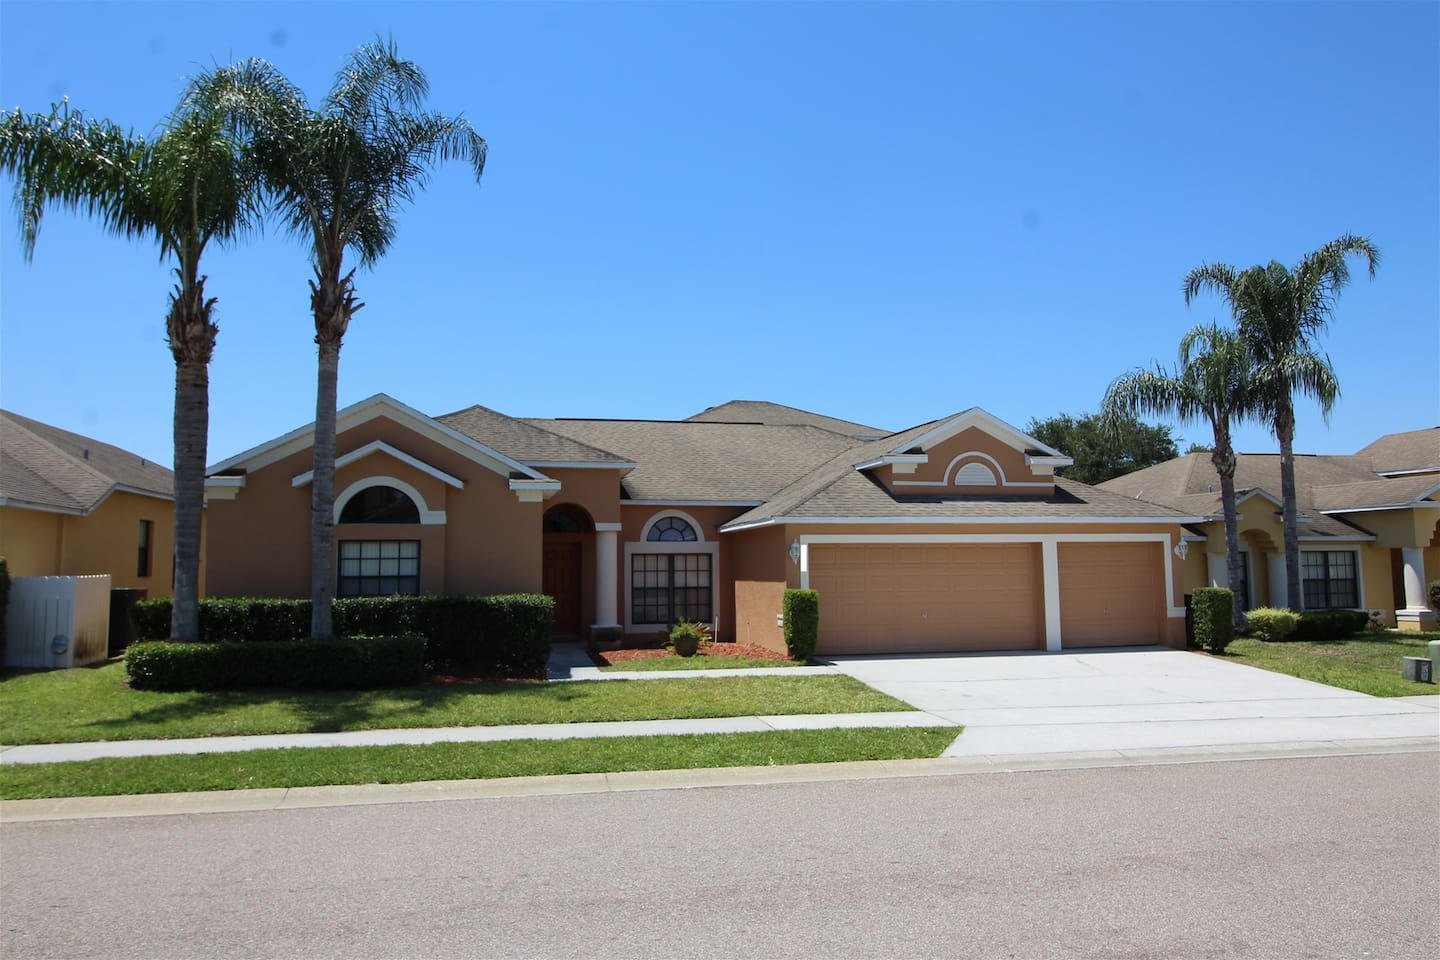 440 - Large 5 bedroom pool home with excellent privacy